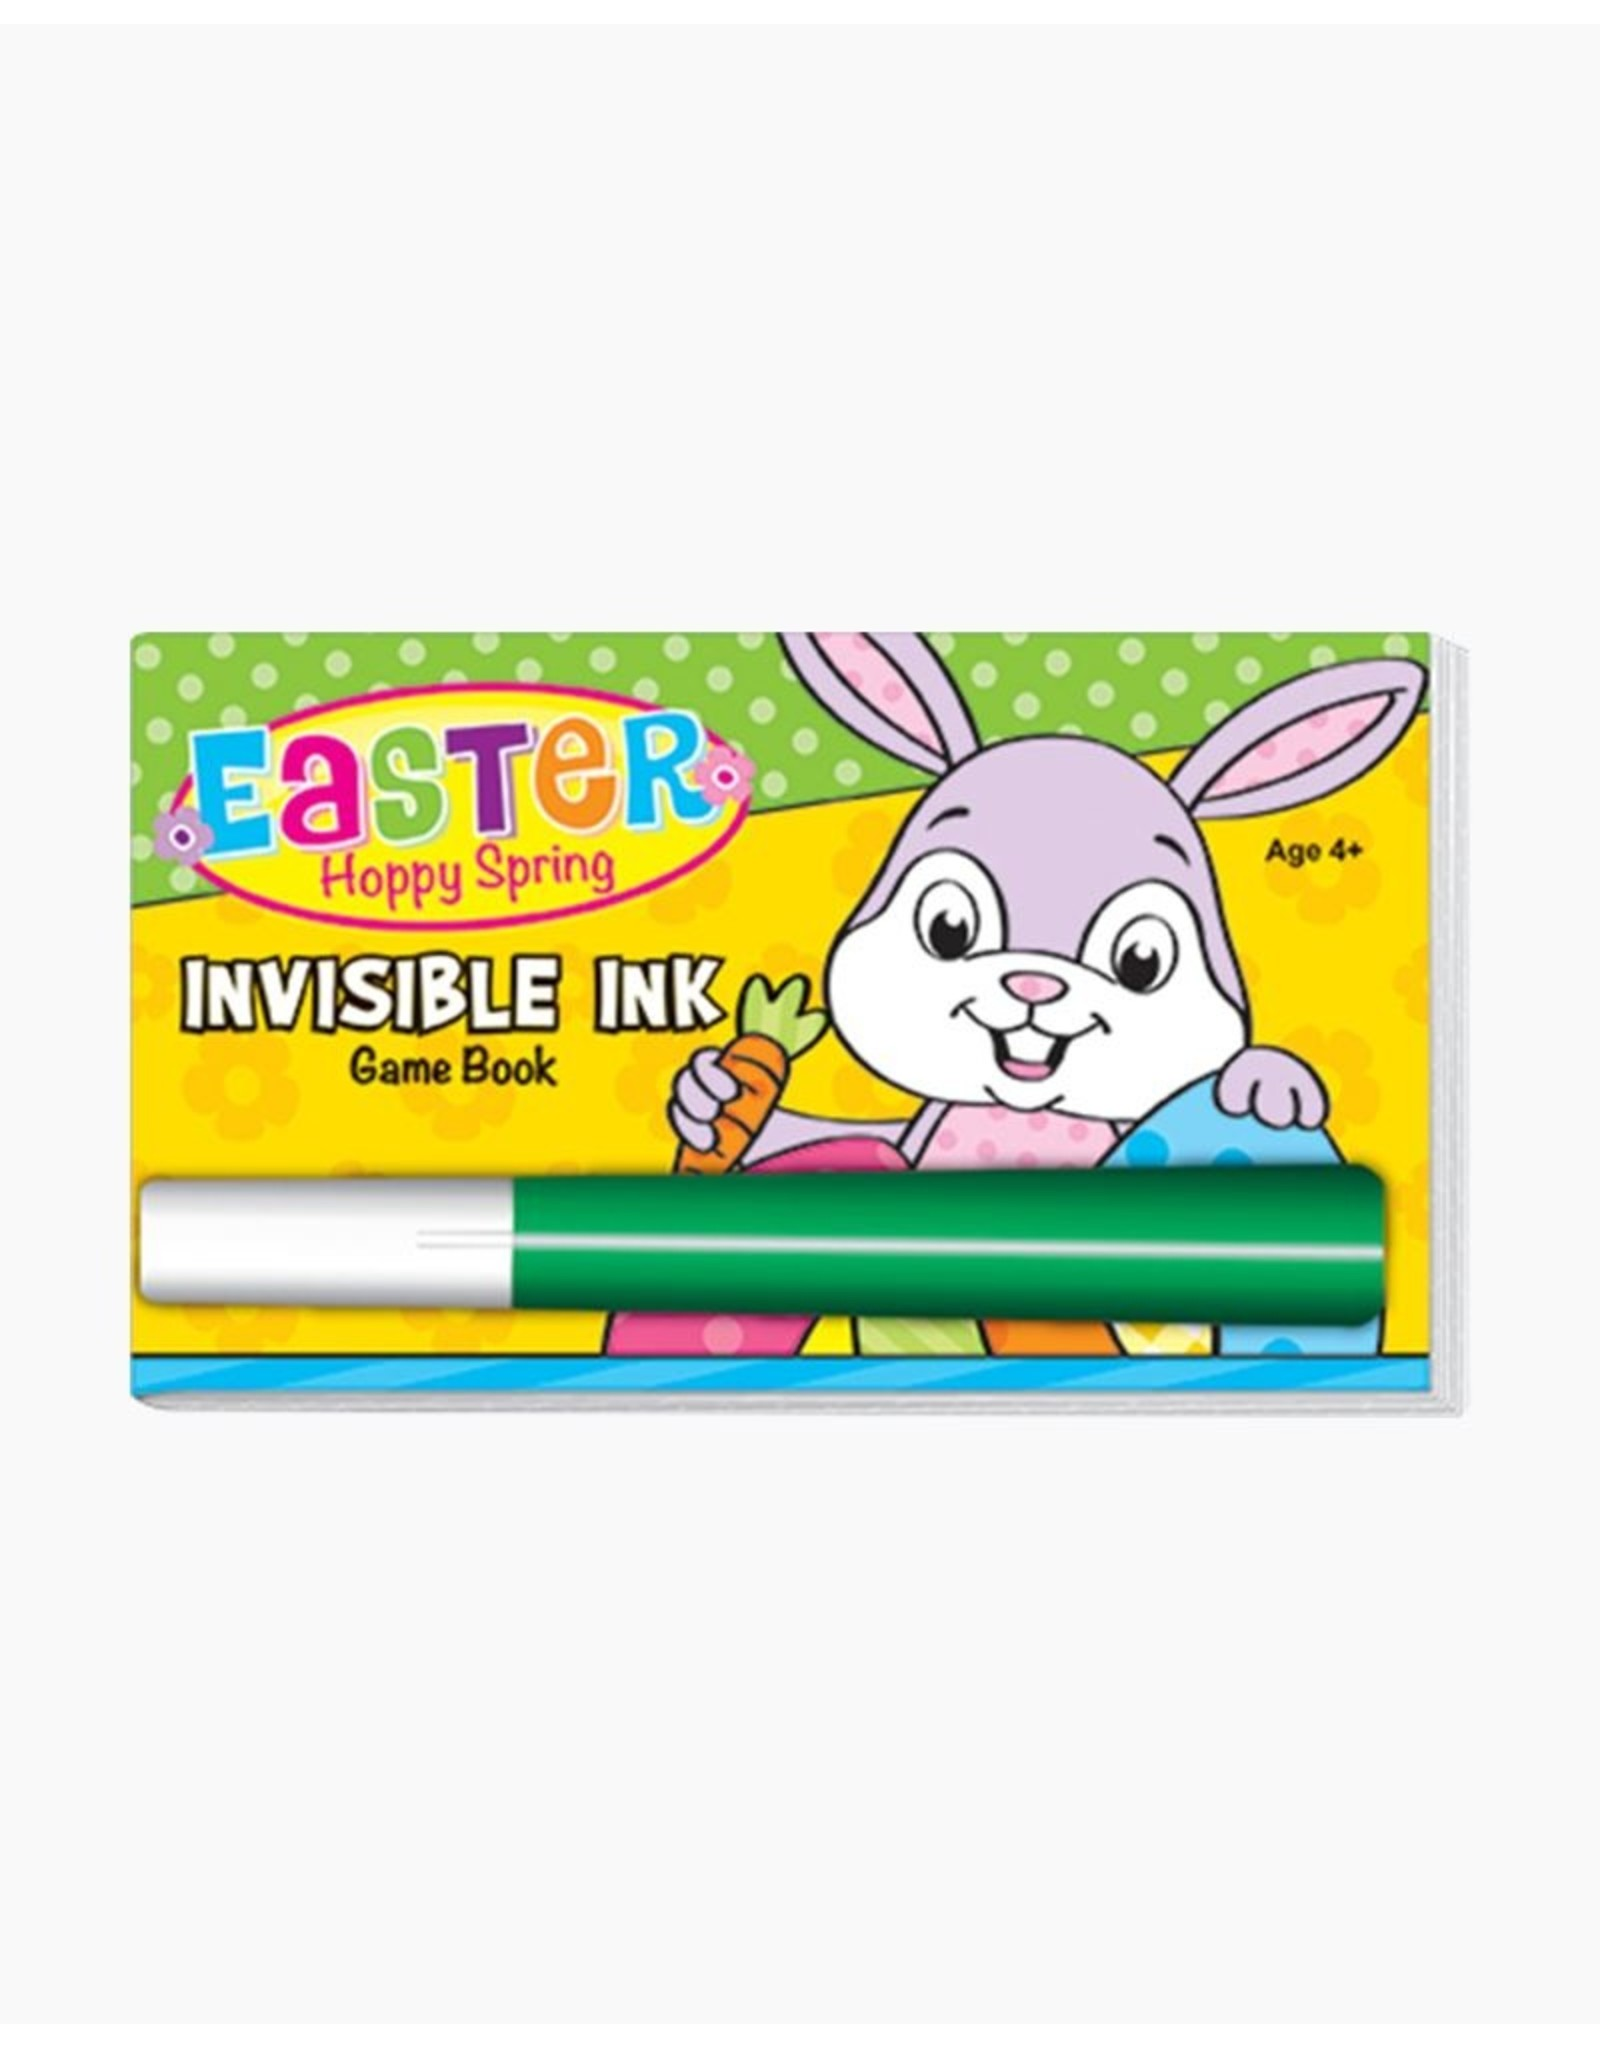 Easter - Hoppy Spring Invisible Ink Game Book